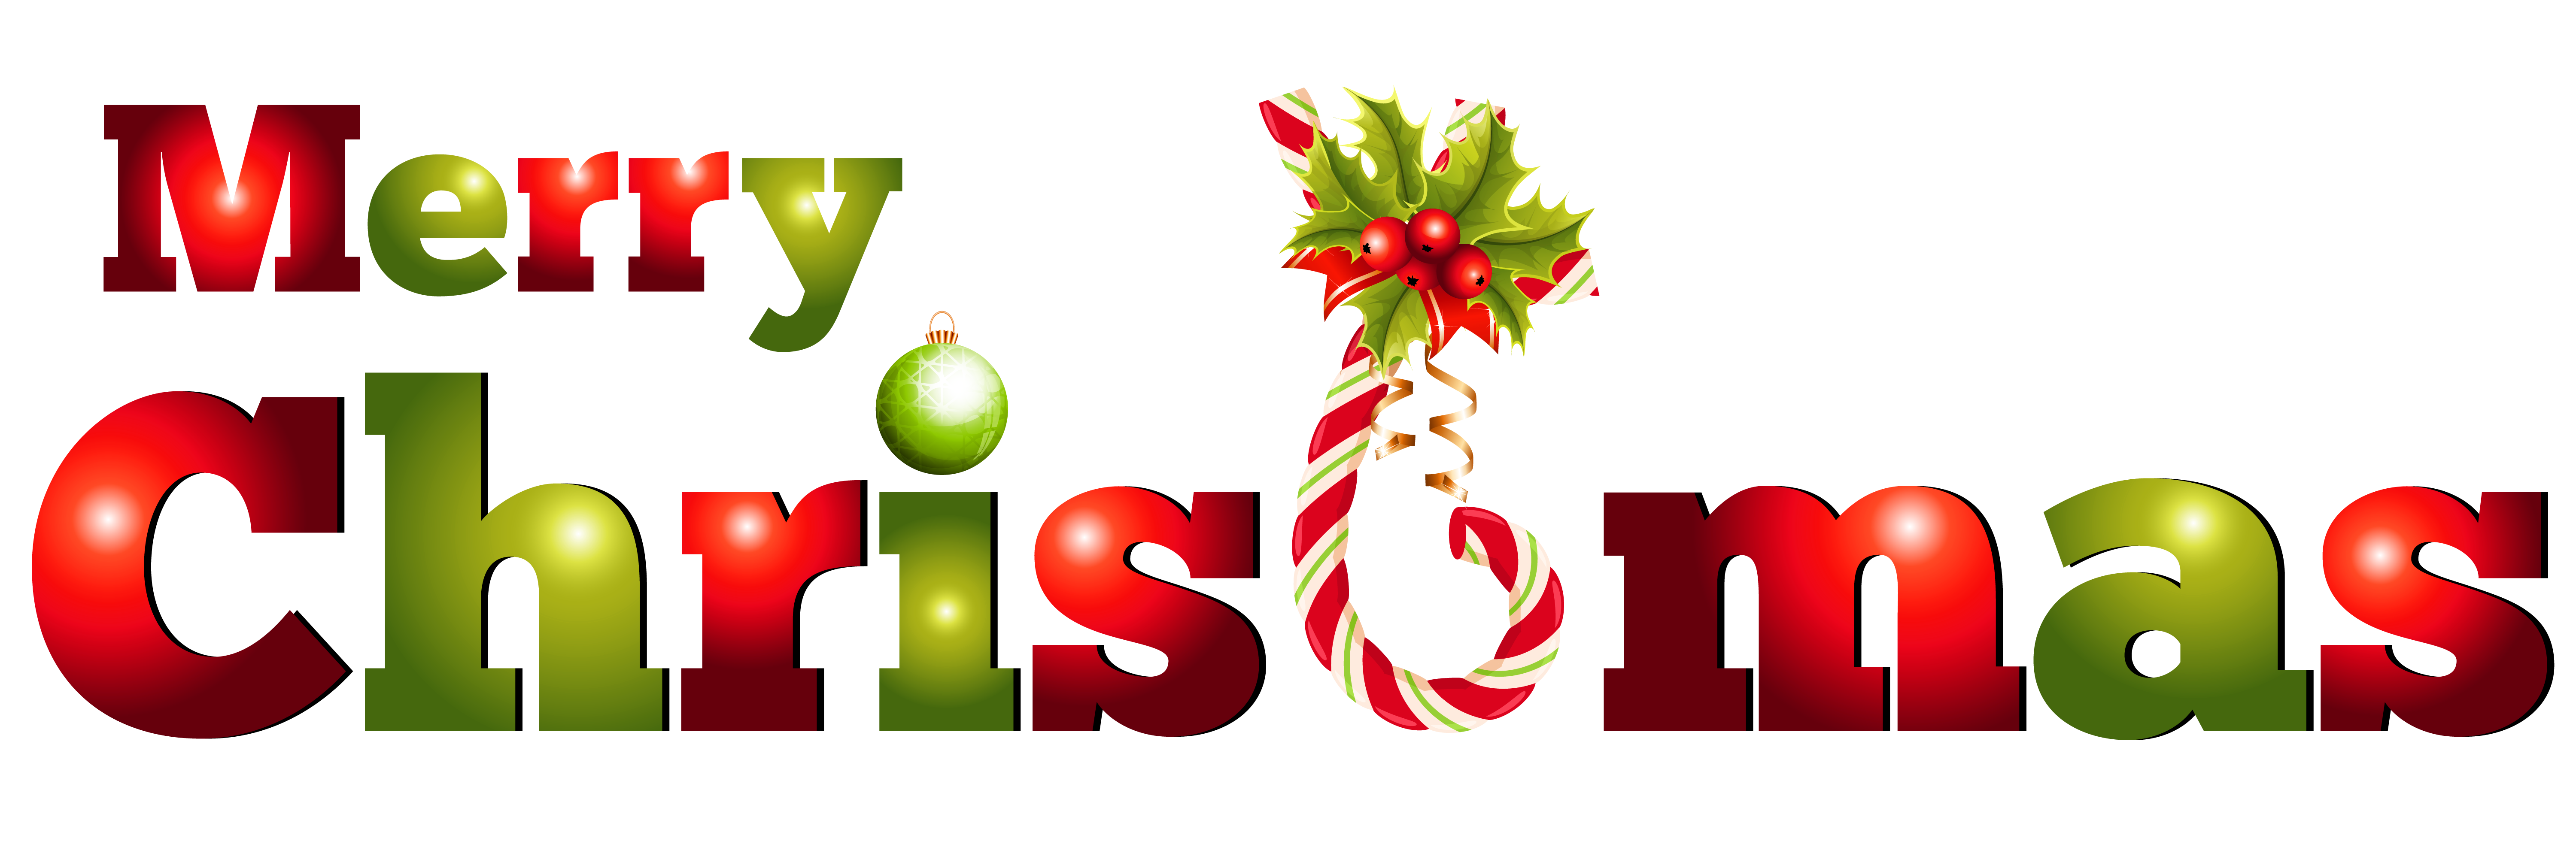 December clipart merry christmas. Collection of transparent